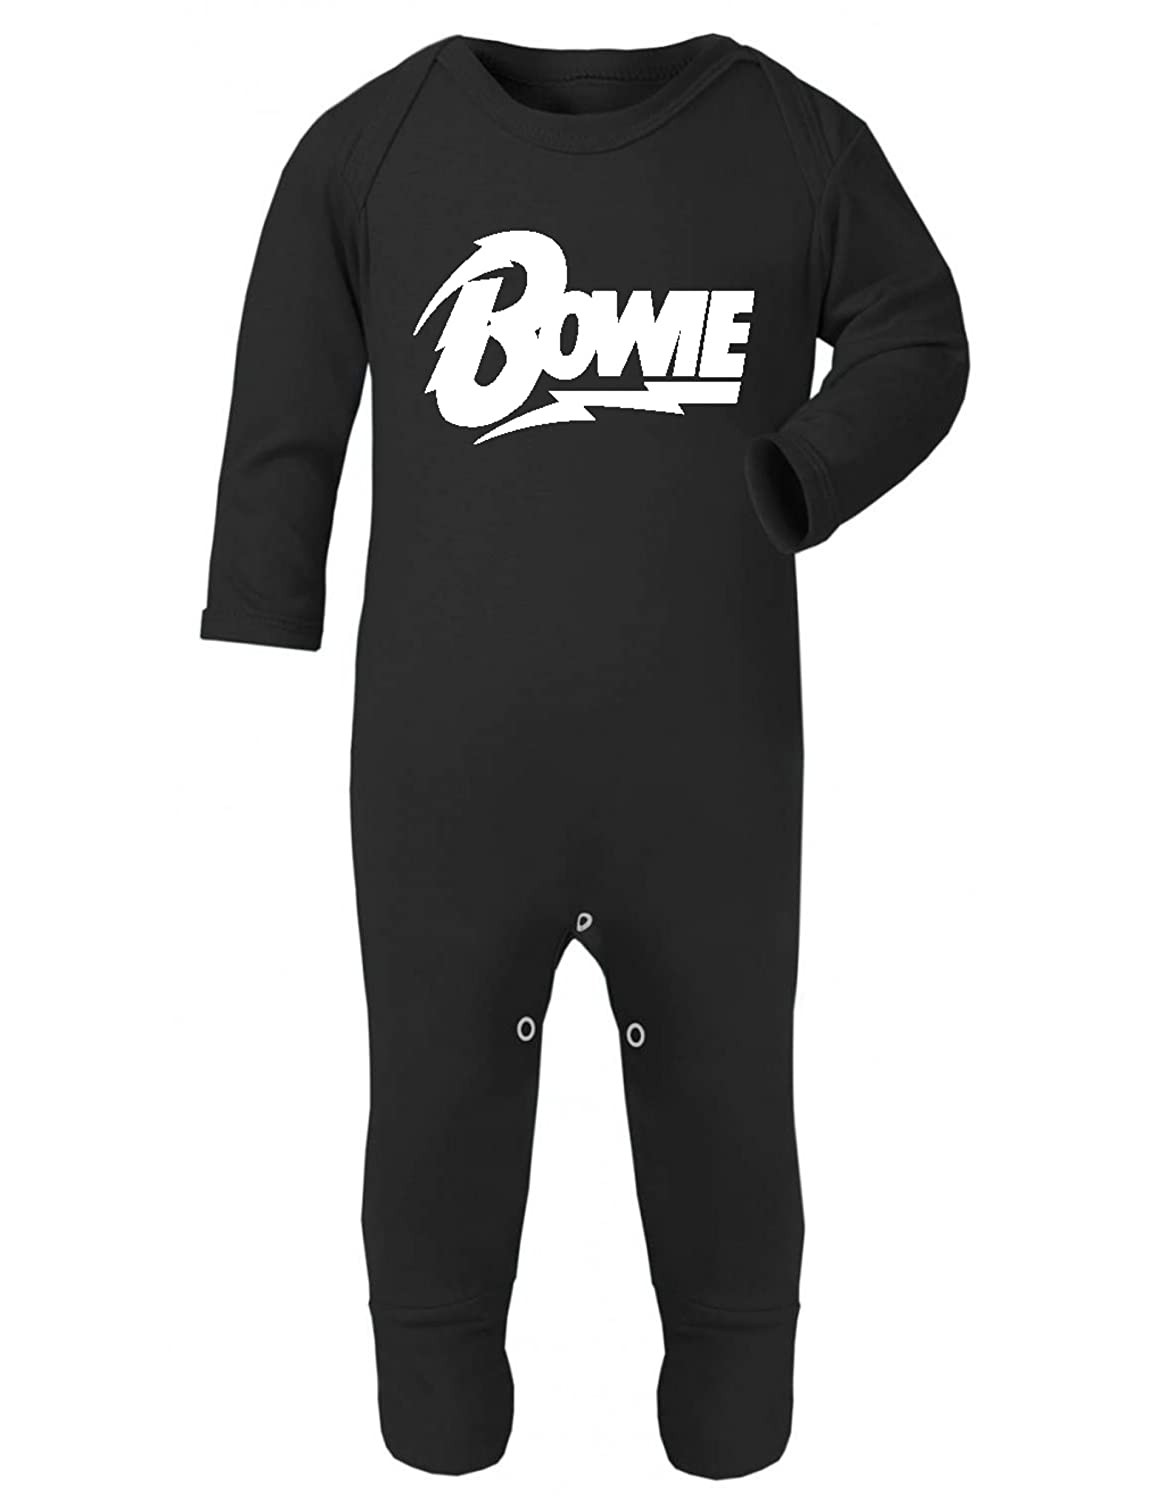 Bowie Rompersuit Baby Grow Black (3-6 Months) ICKLE PEANUT